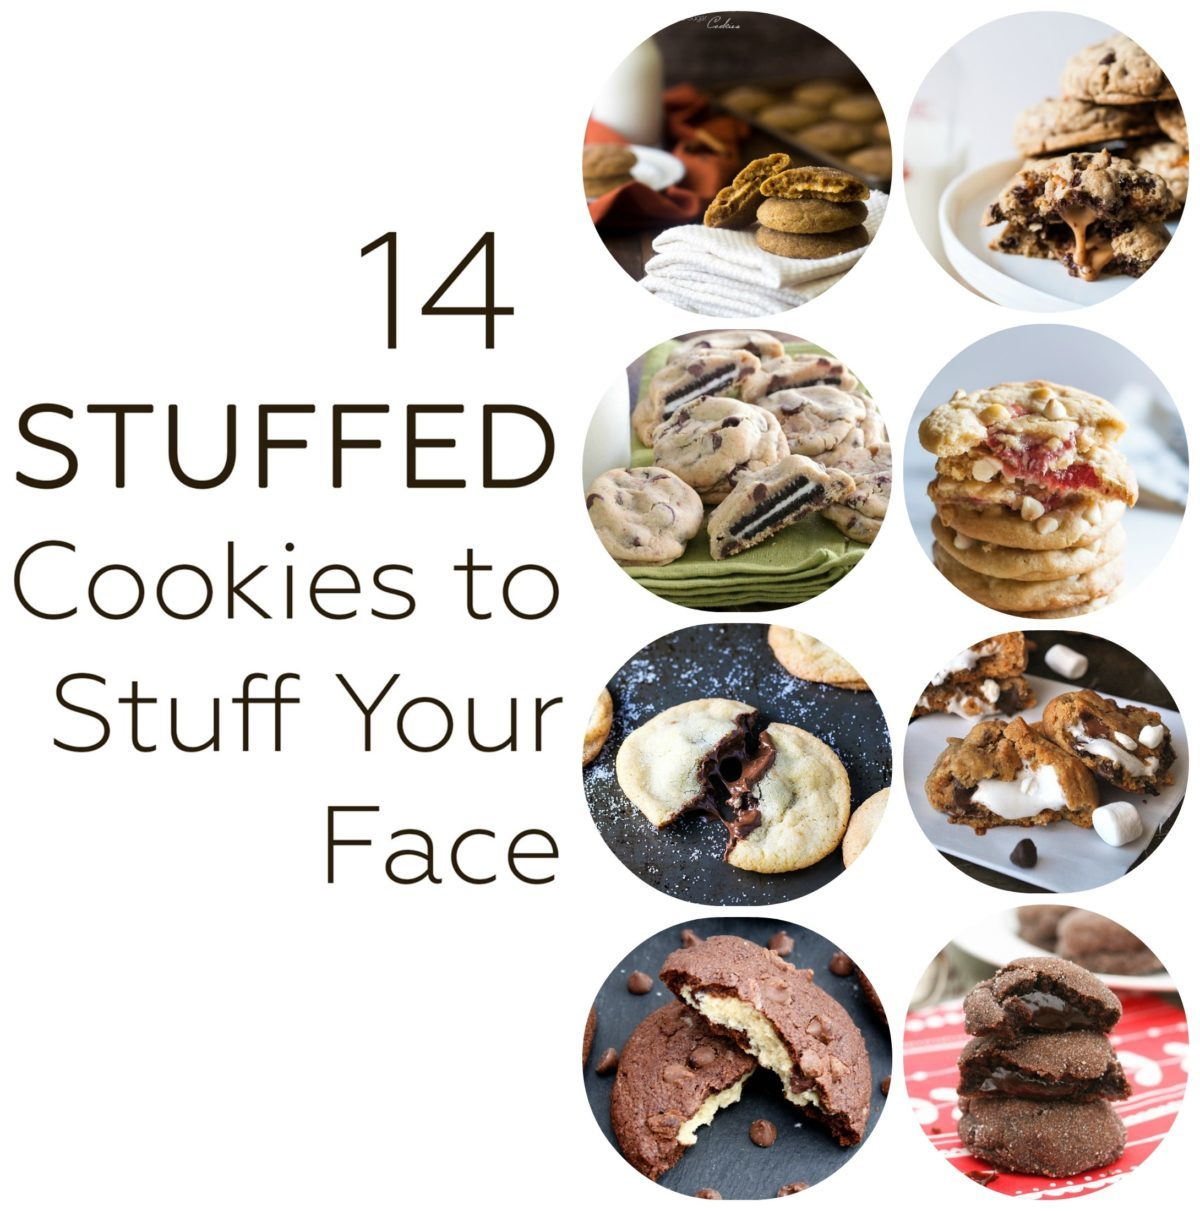 14 stuffed cookies to stuff your face